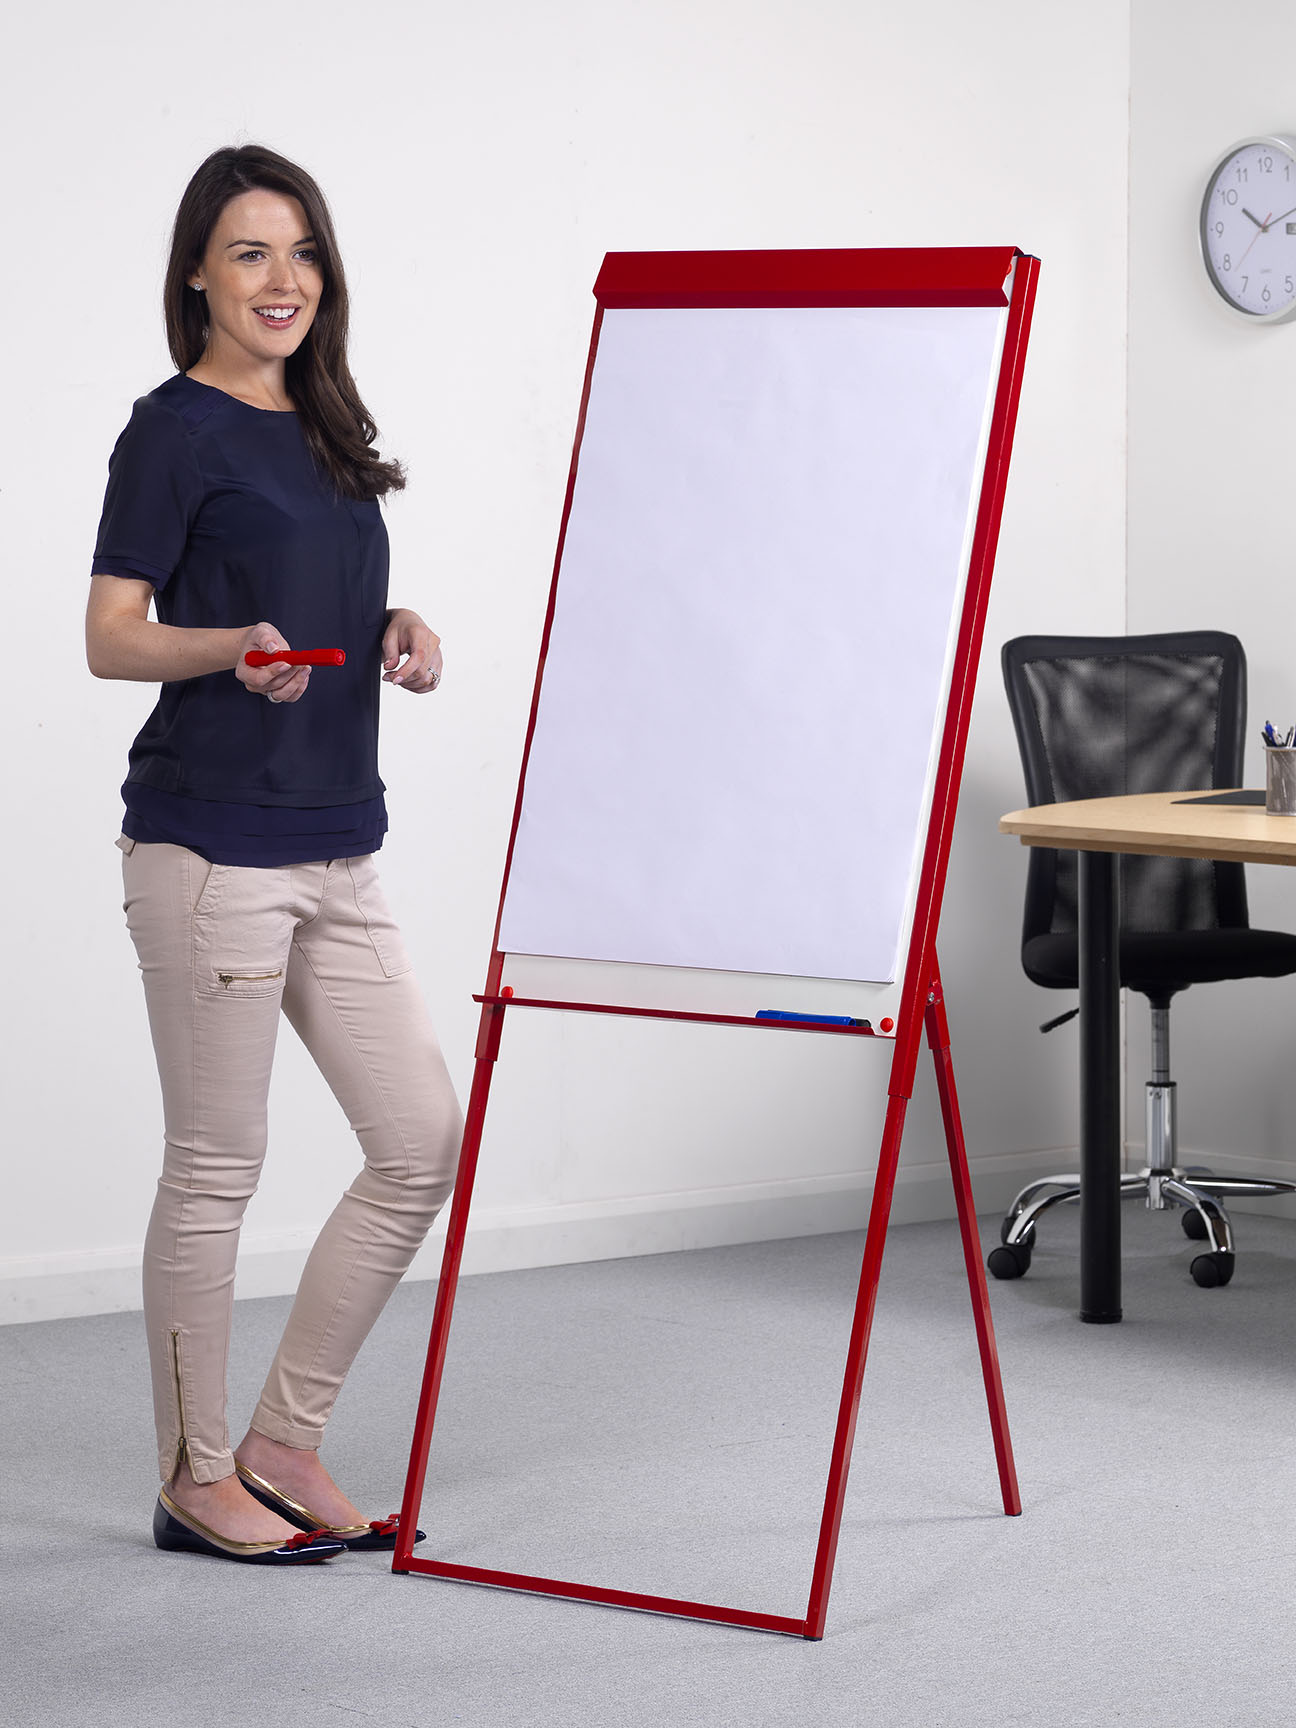 2 Clix Easel Mobile Writing Board